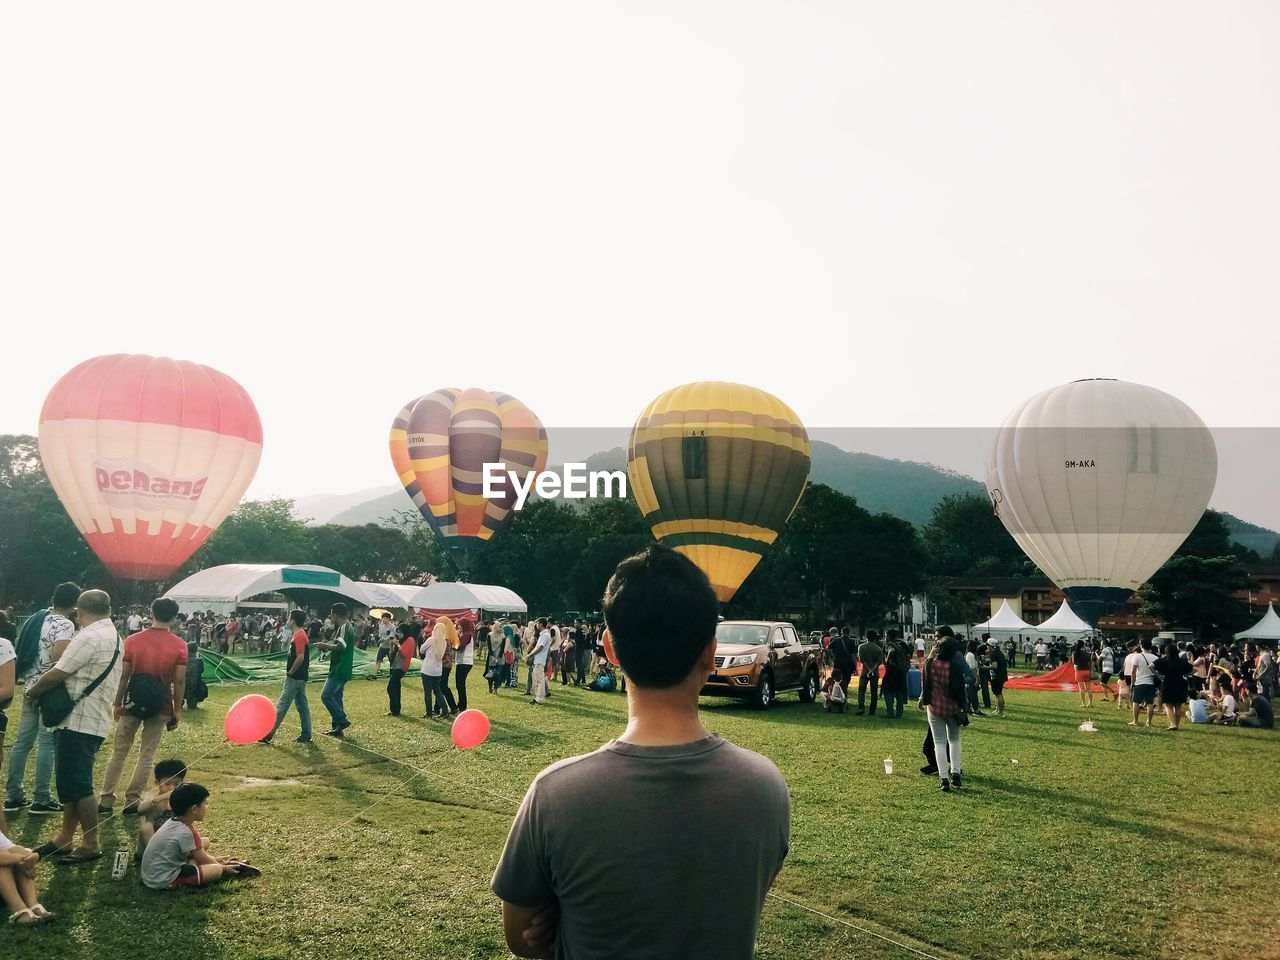 large group of people, real people, balloon, men, hot air balloon, women, grass, leisure activity, clear sky, ballooning festival, enjoyment, field, day, outdoors, building exterior, nature, sky, adult, people